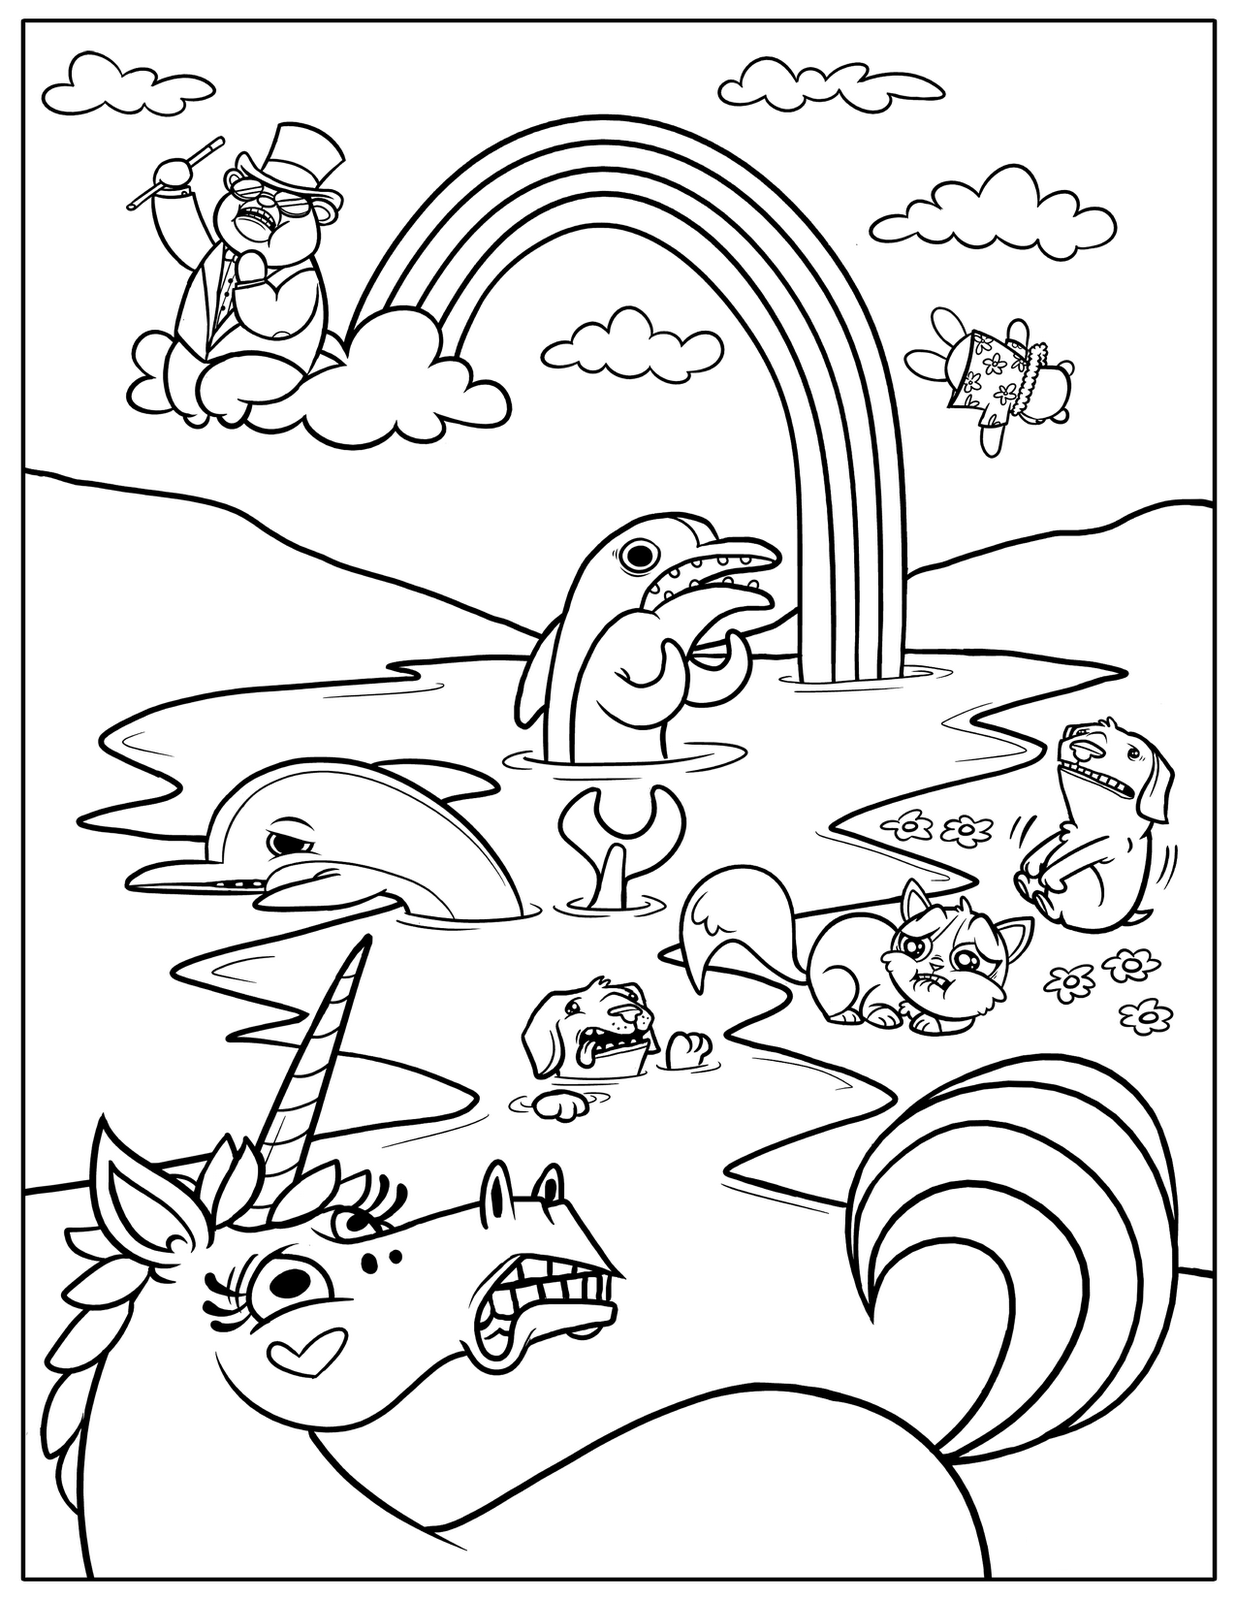 rainbow coloring pages kids printable - Kids Coloring Sheet